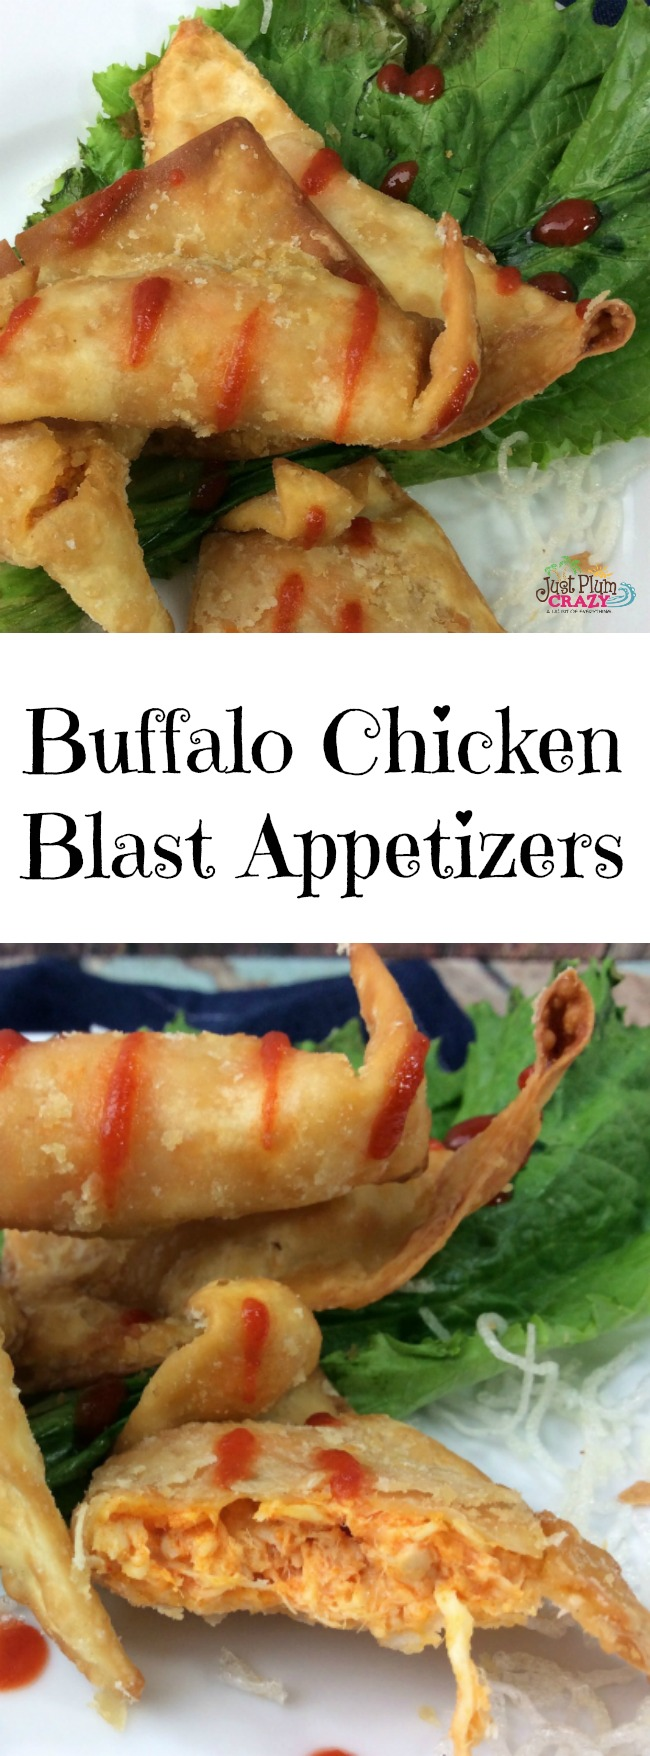 The Buffalo Chicken Blast Appetizers Recipe is made with rotisserie chicken, it's super easy to make and perfect for your game day party.